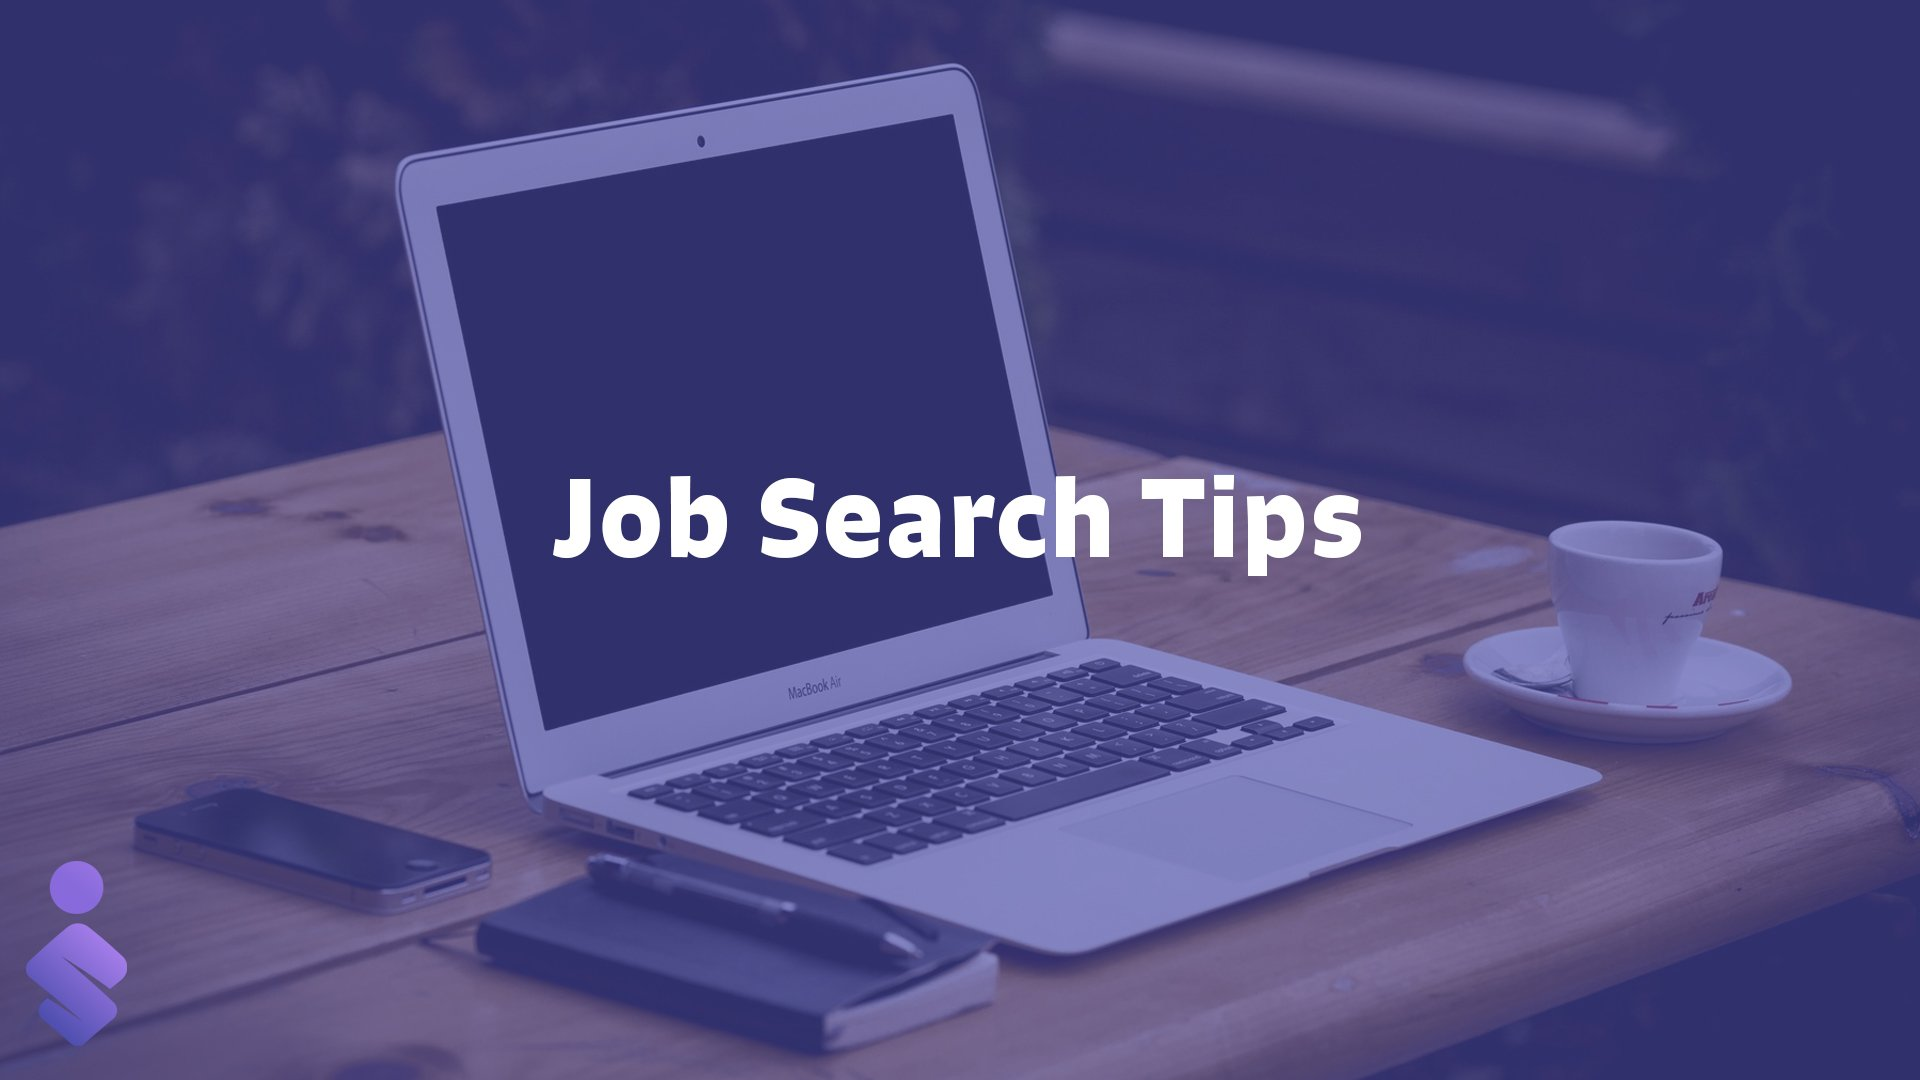 Job Search Tips - Blogs & Articles